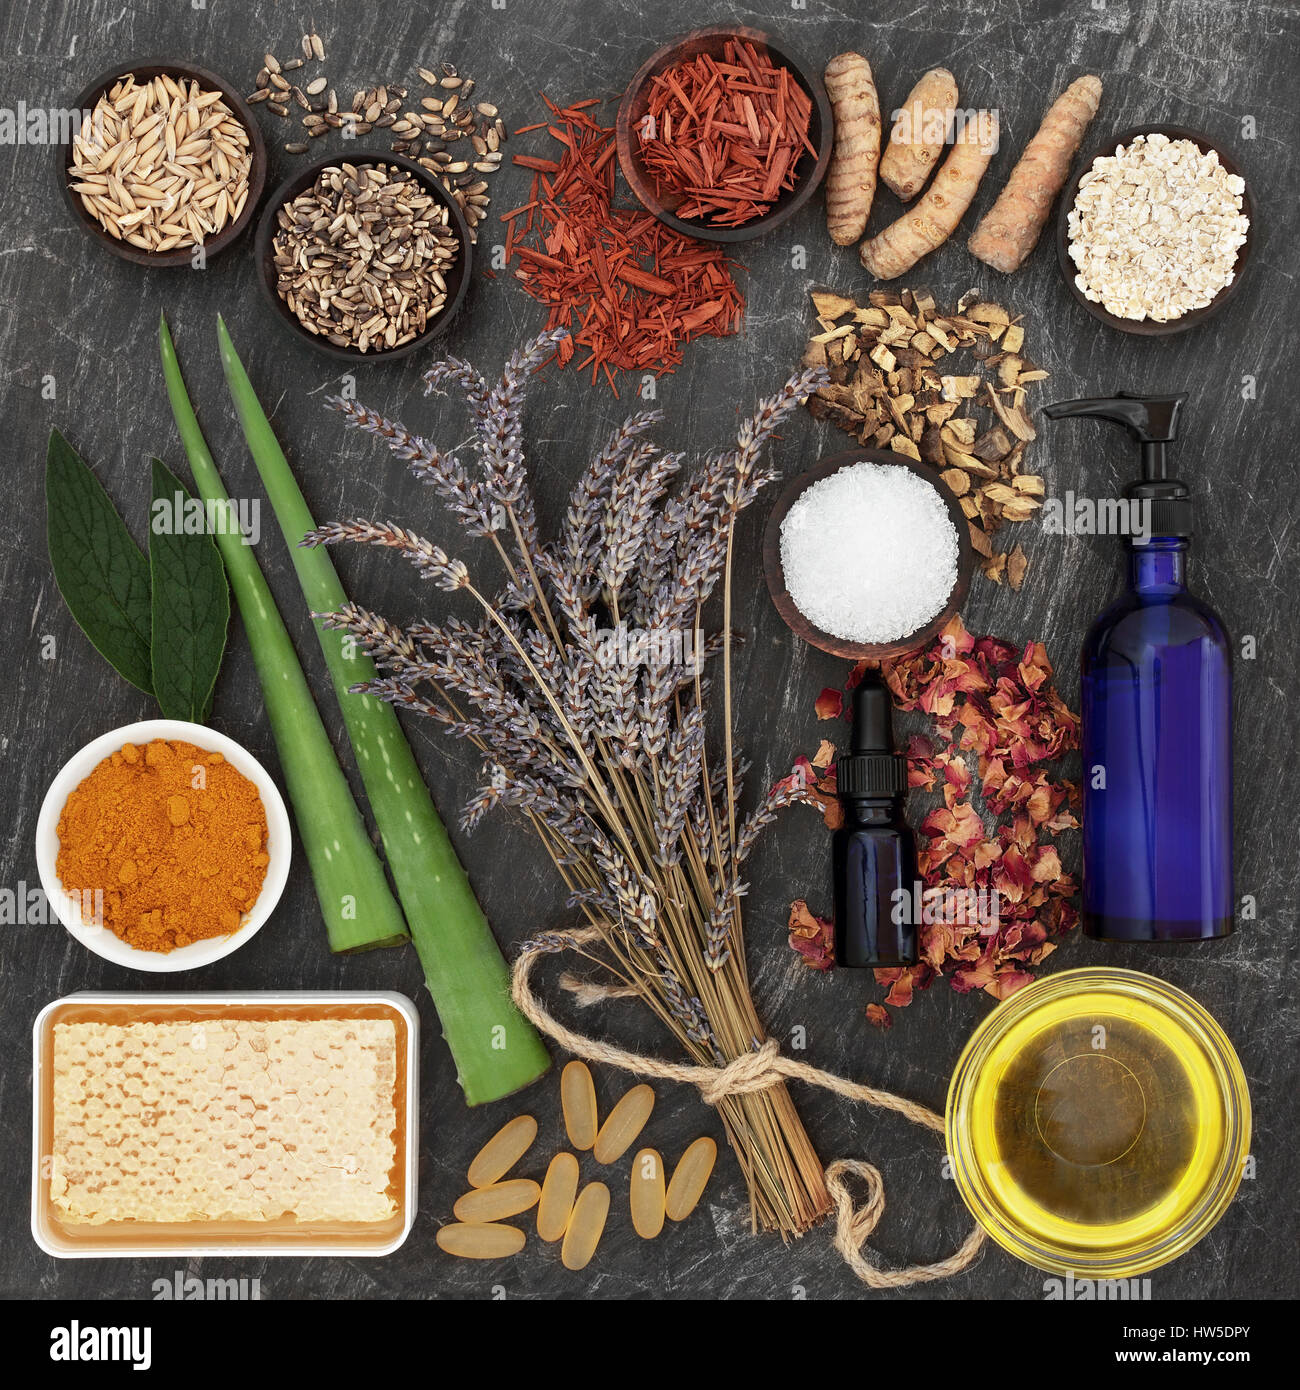 Herbs and ingredients to heal skin disorders including psoriasis and eczema. - Stock Image